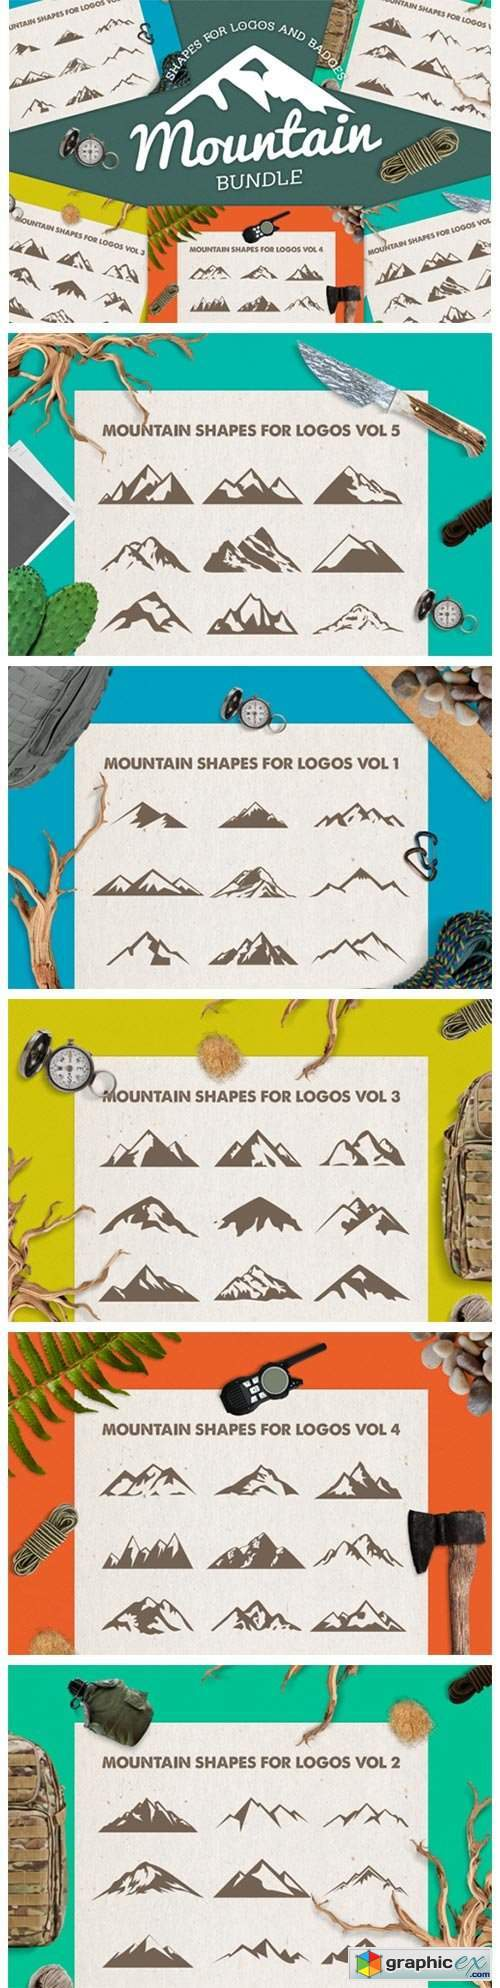 Mountain Shapes Bundle